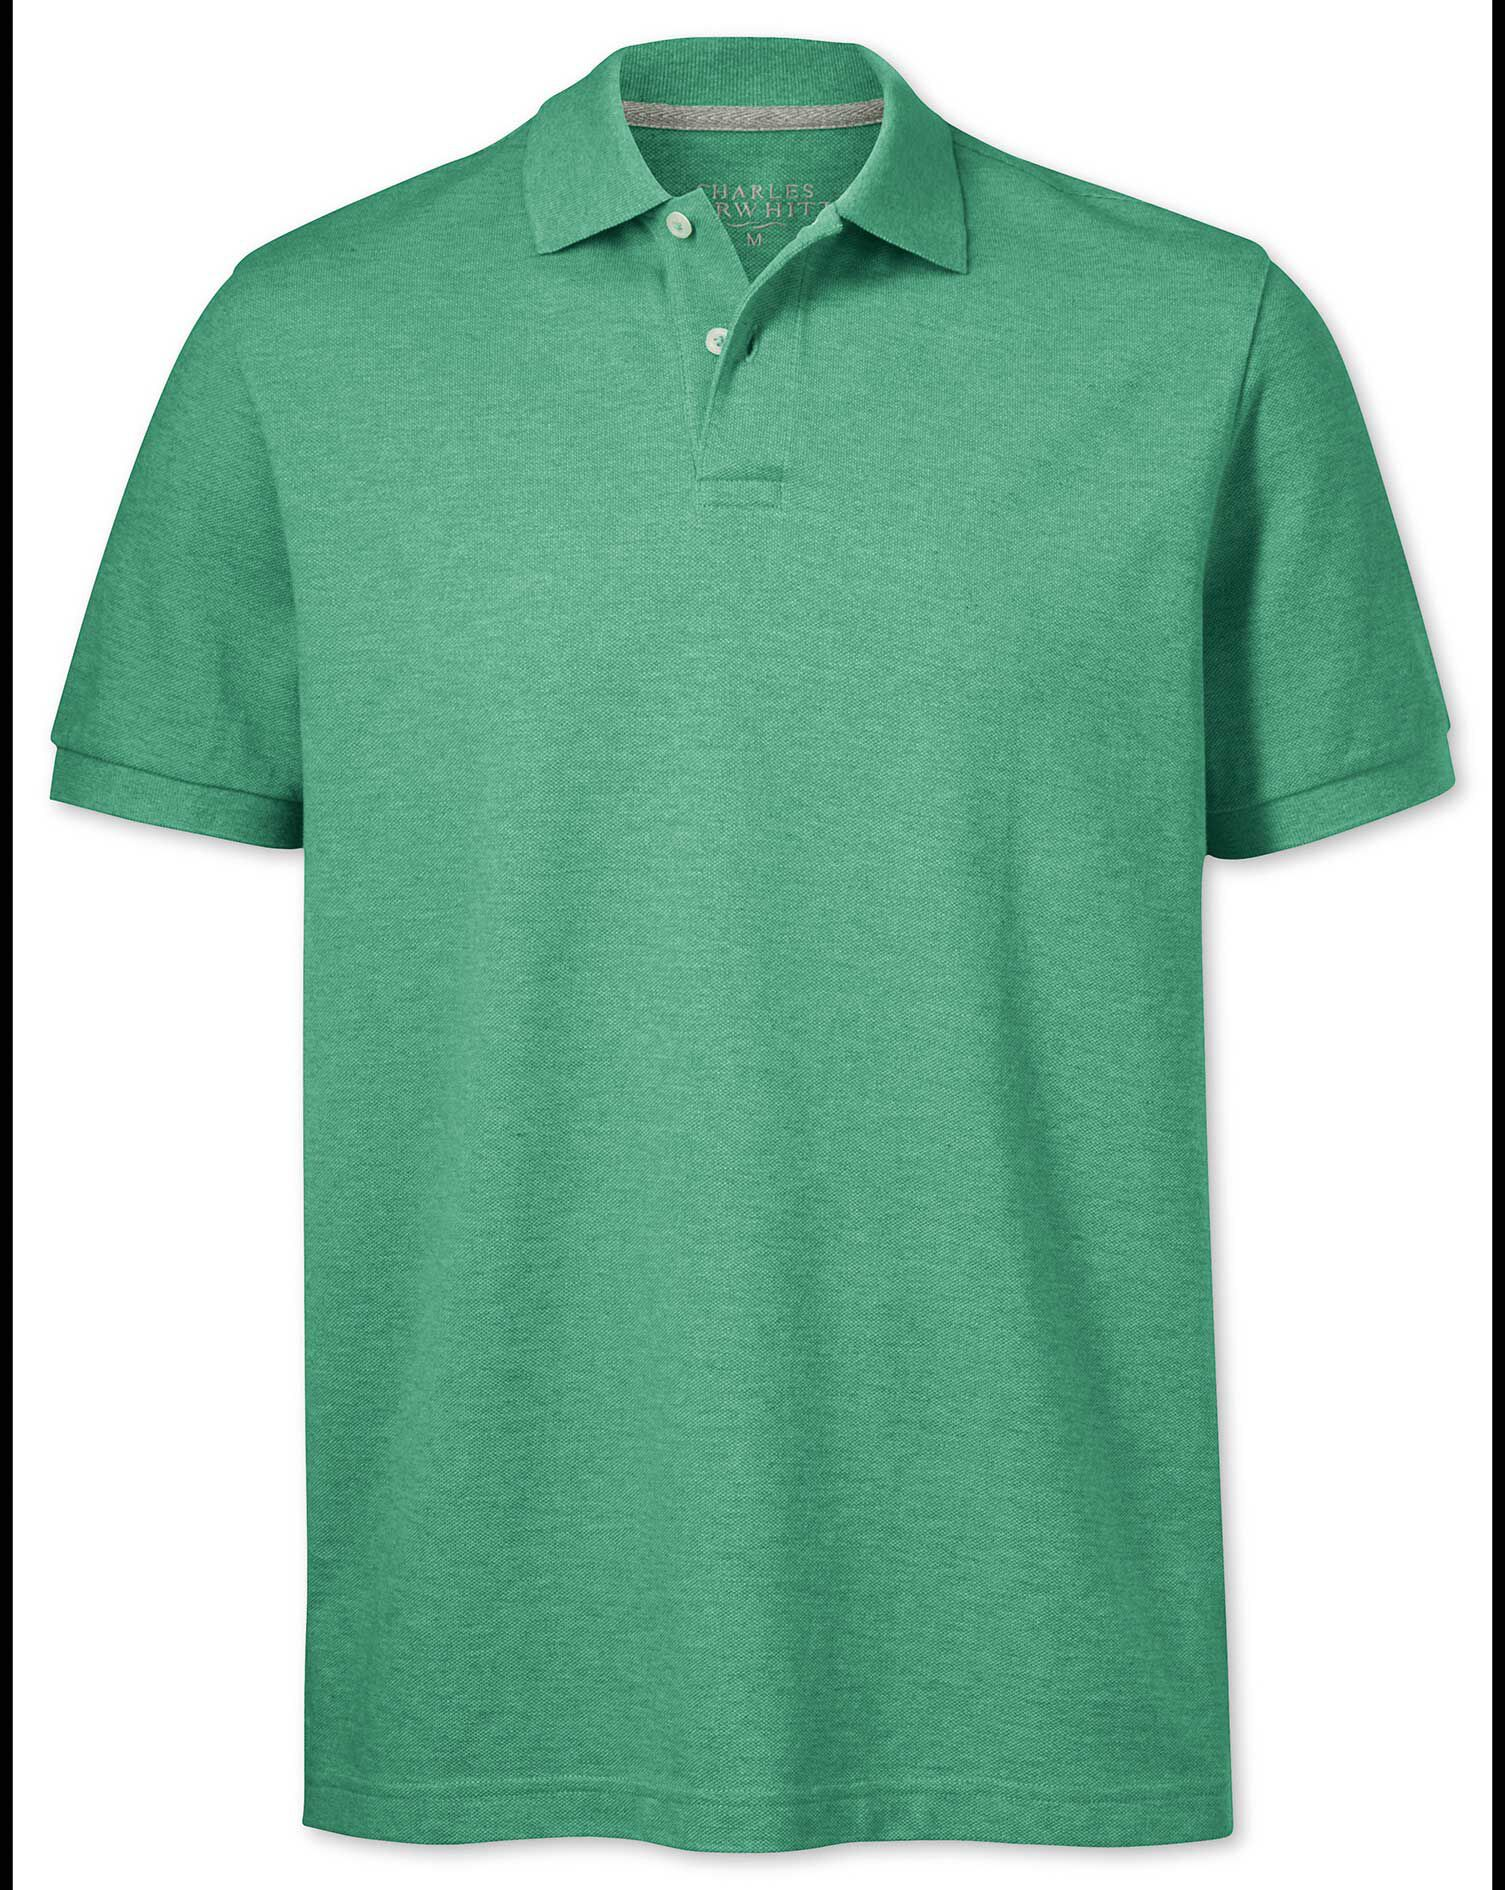 Light Green Pique Cotton Polo Size Small by Charles Tyrwhitt